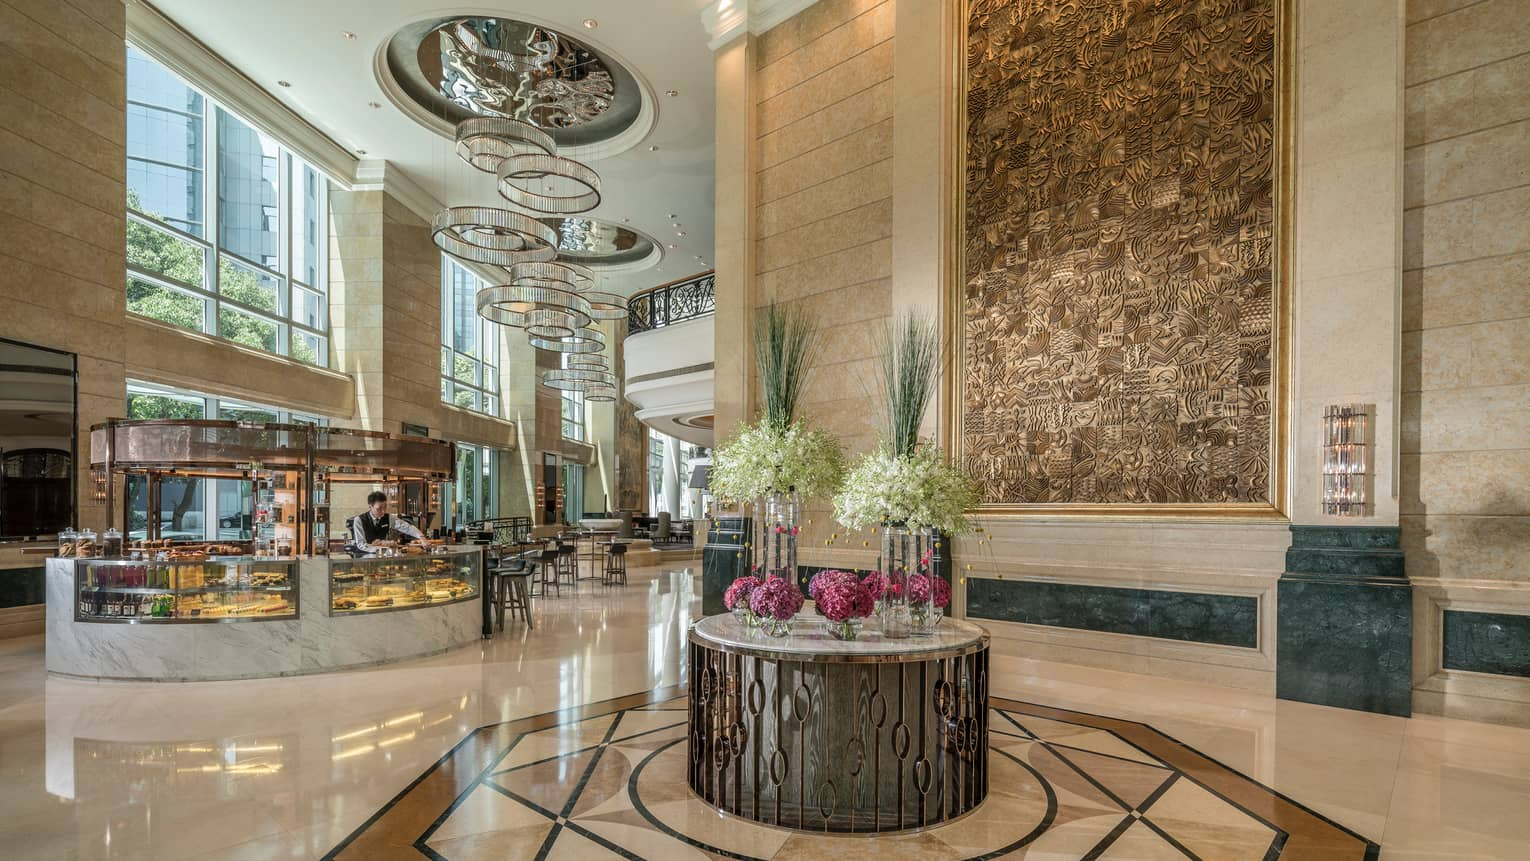 Four Seasons Hotel Shanghai lobby with high ceilings, gleaming floors, crystal chandeliers